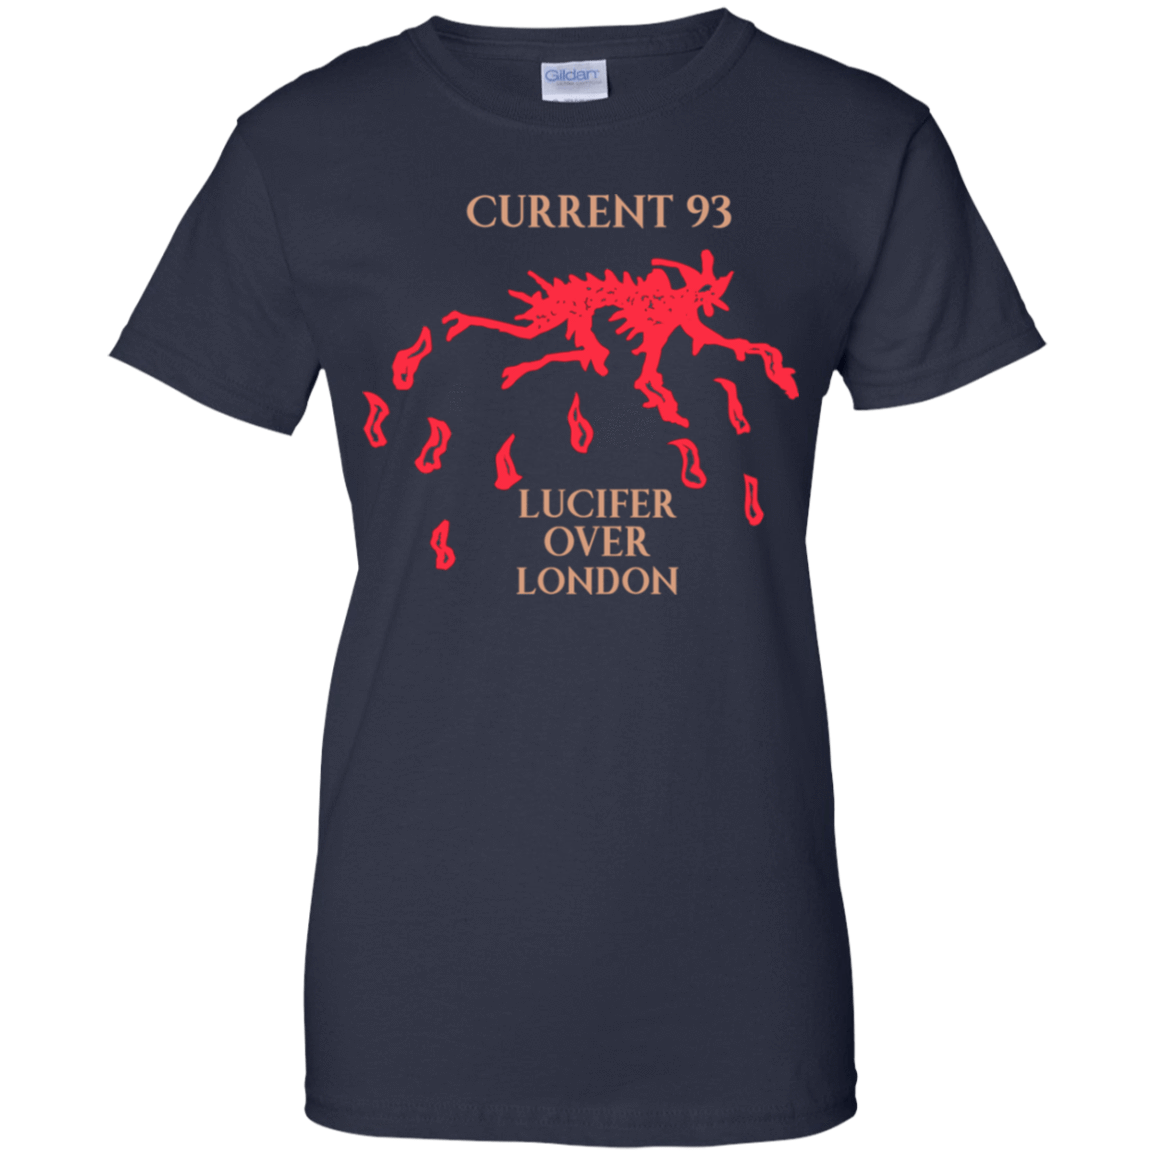 Current 93 Lucifer Over London 939-9259-73890762-44765 - Tee Ript